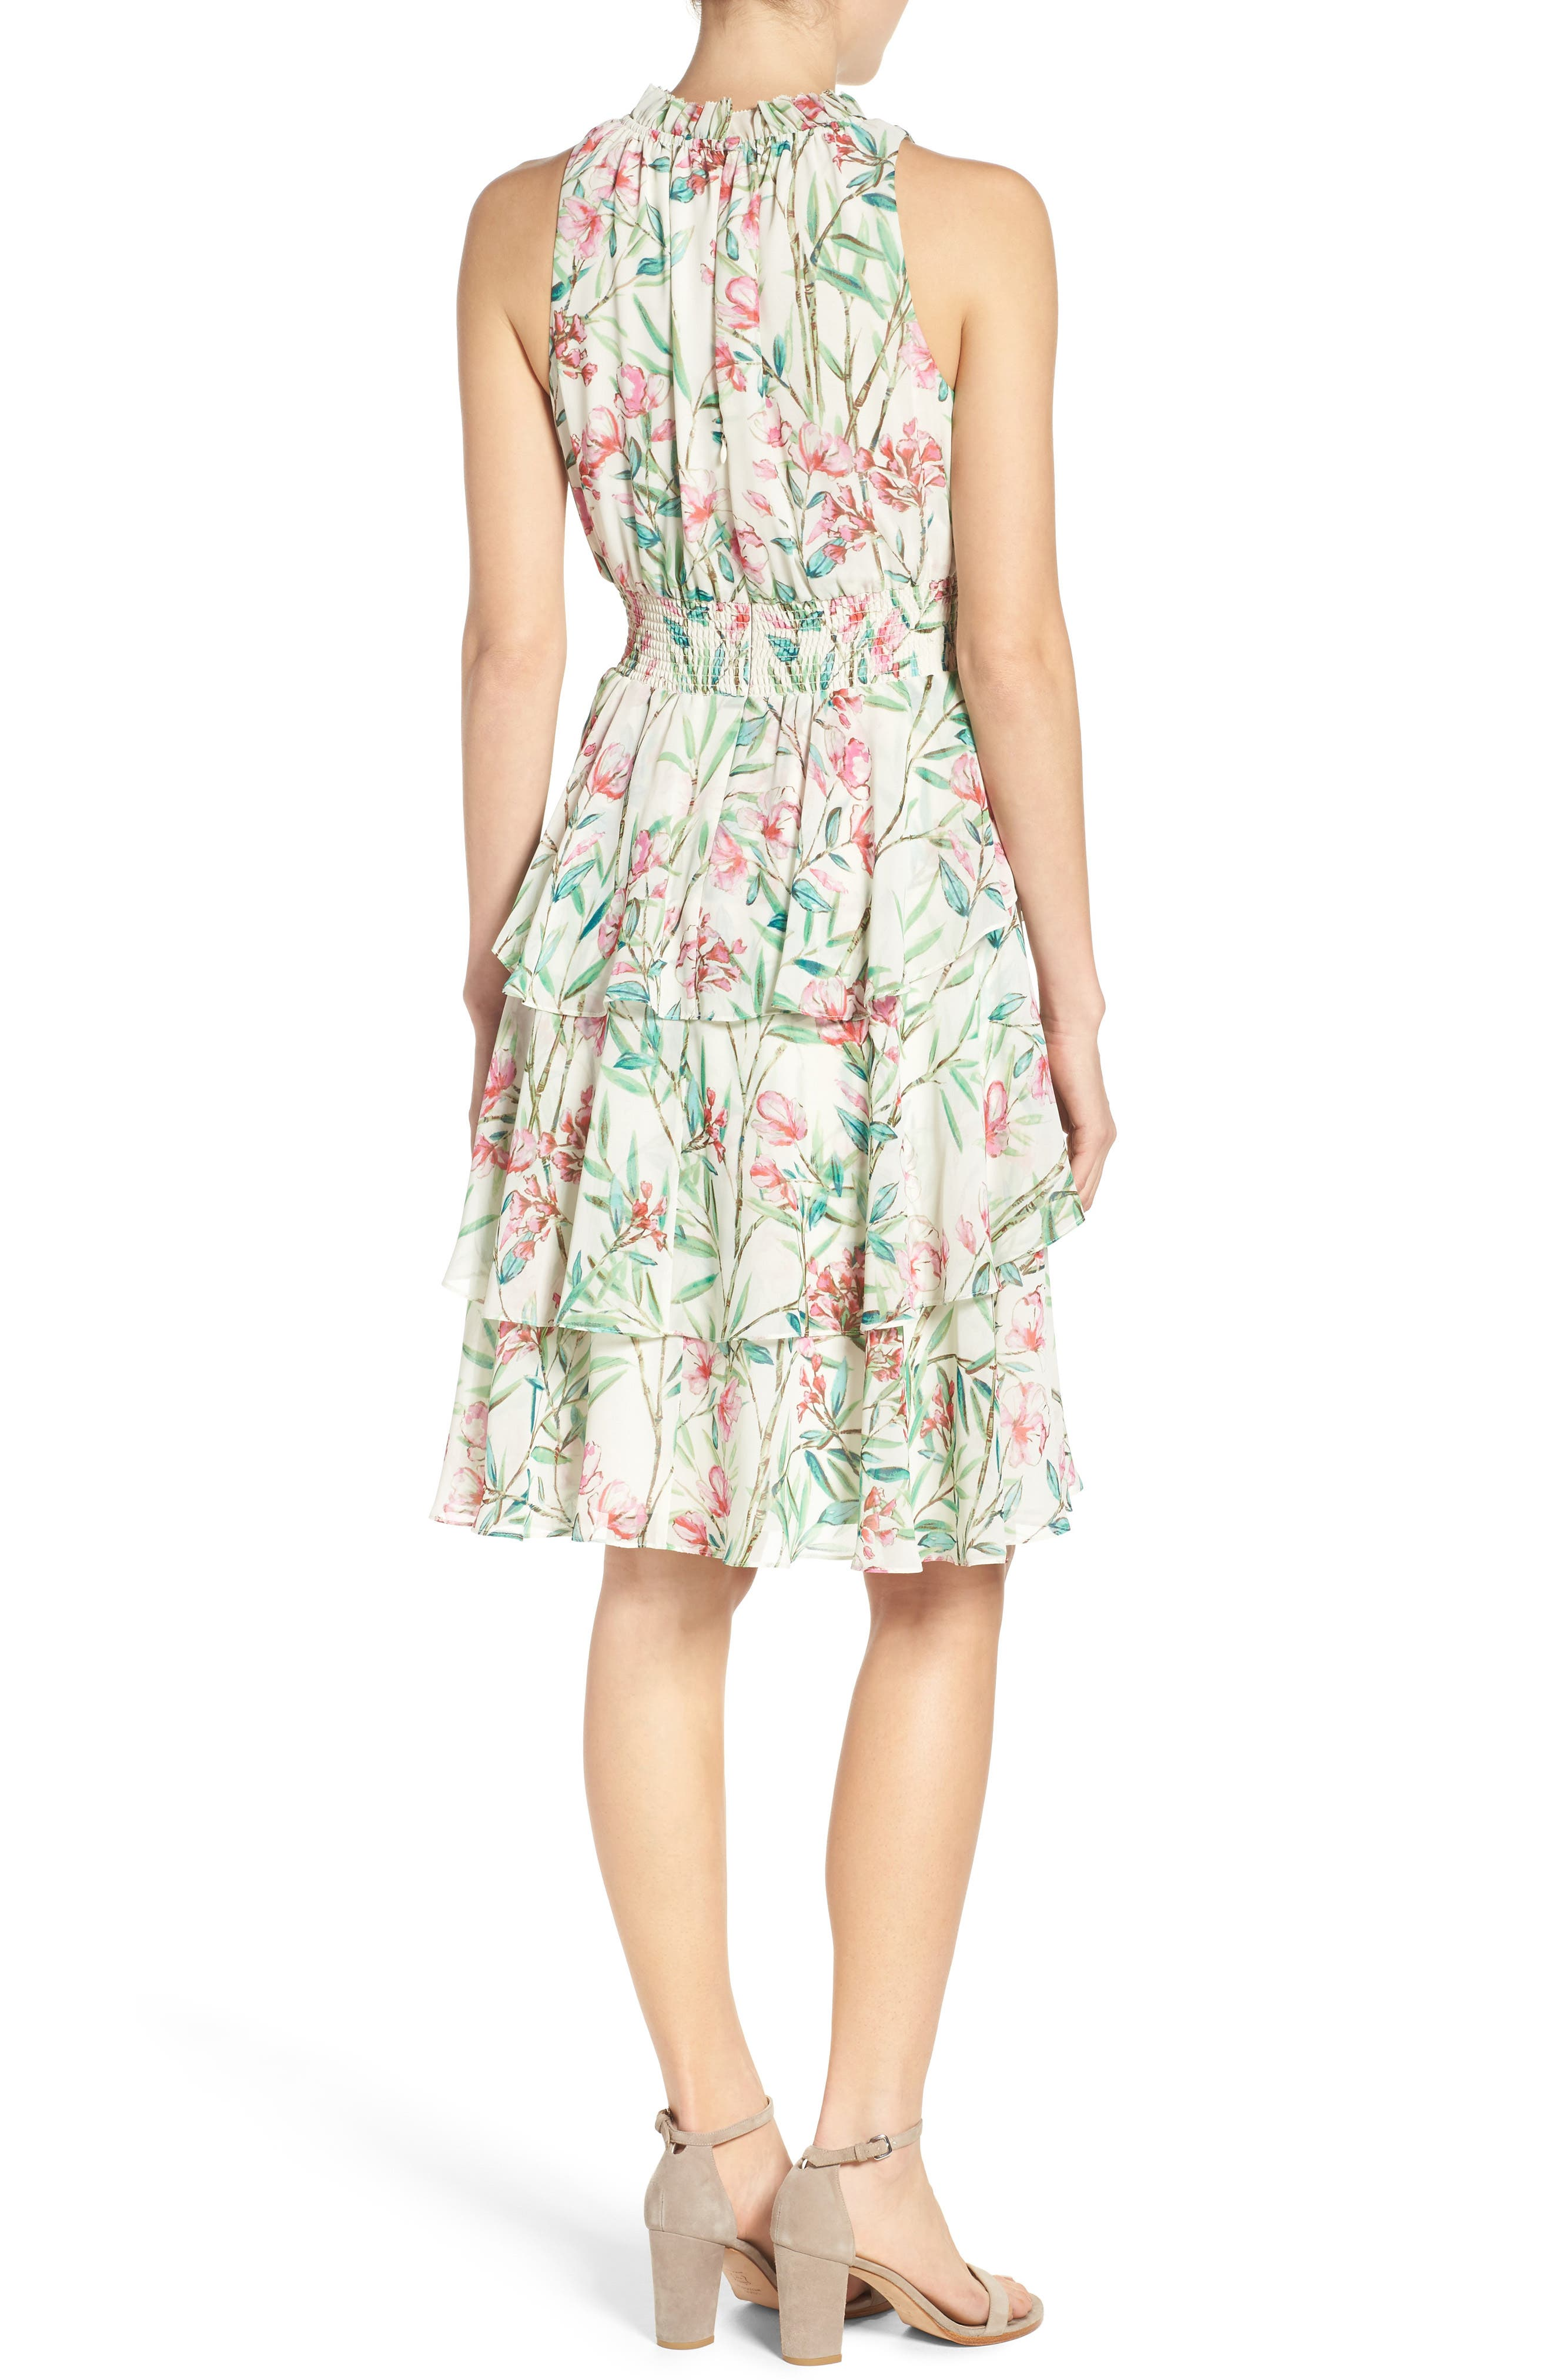 Chiffon Fit & Flare Dress,                             Alternate thumbnail 2, color,                             Ivory/ Pink/ Green